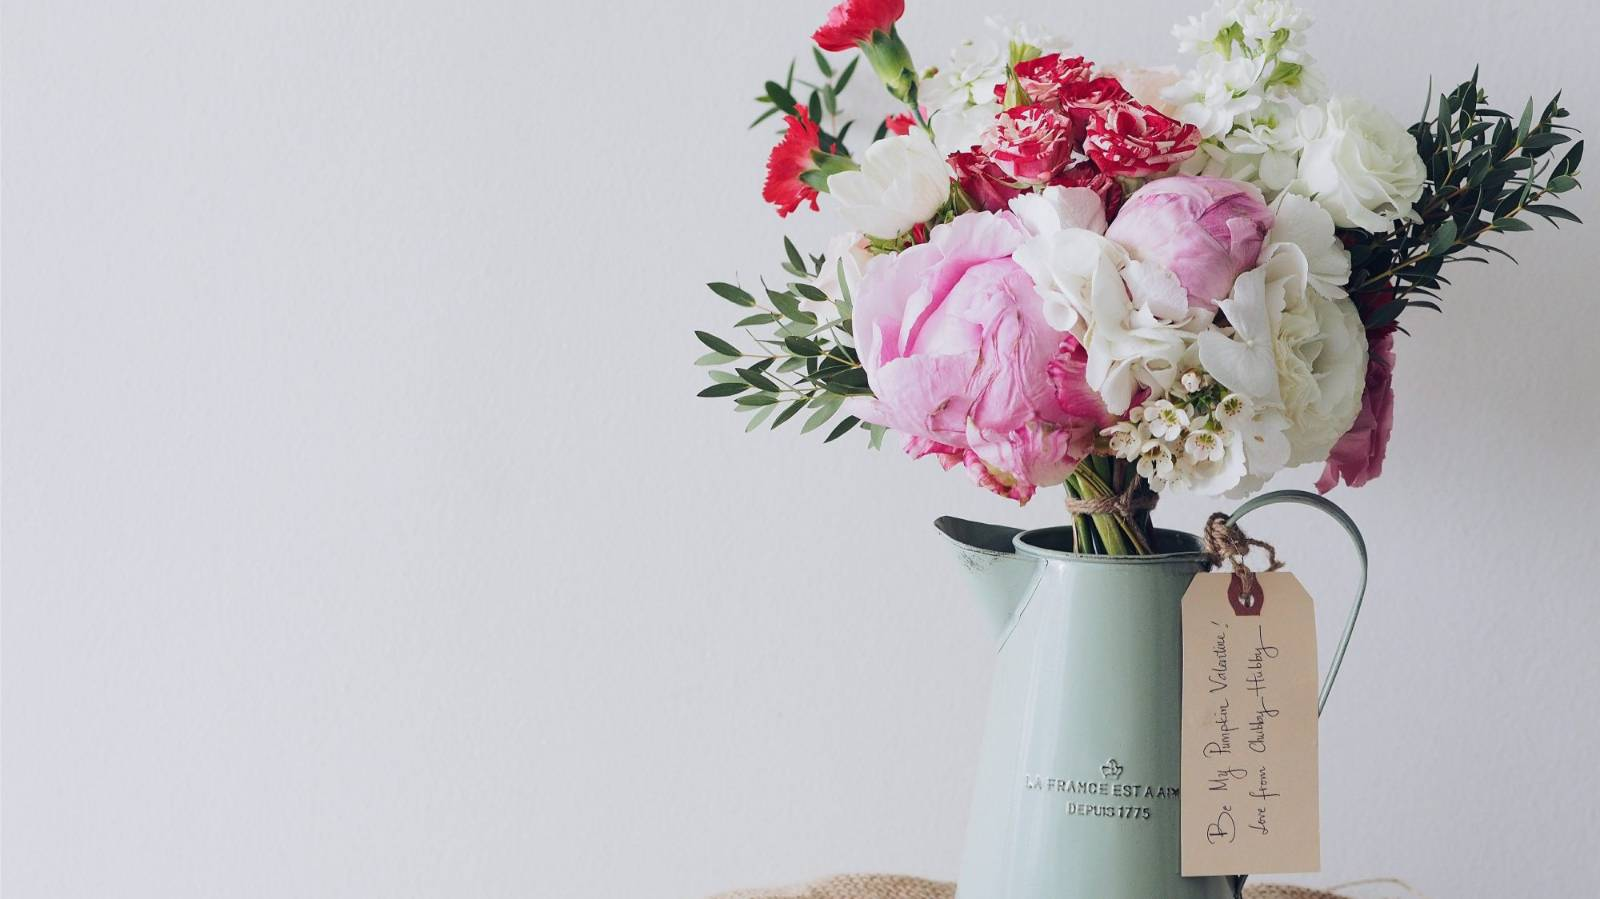 How to choose the perfect housewarming gift